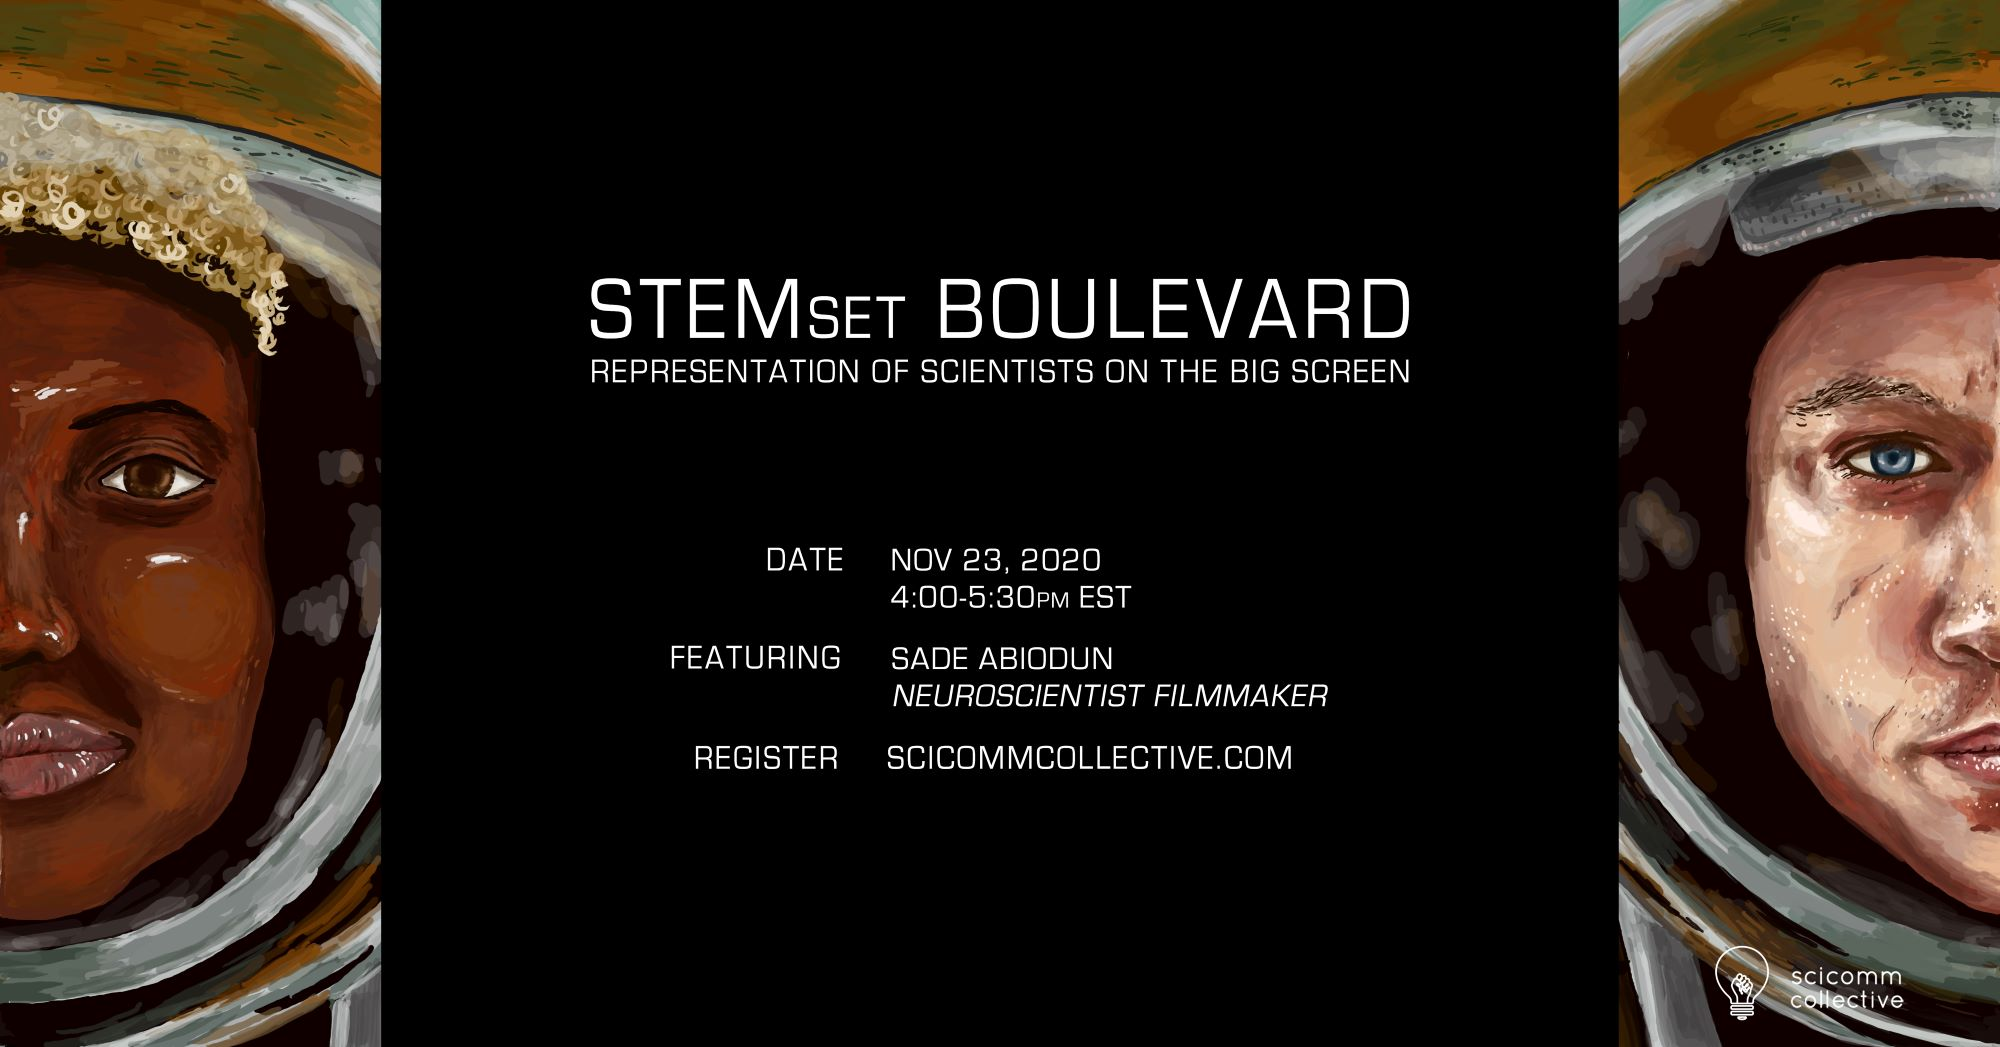 STEMSet Boulevard: Representation of Scientists on the Big Screen